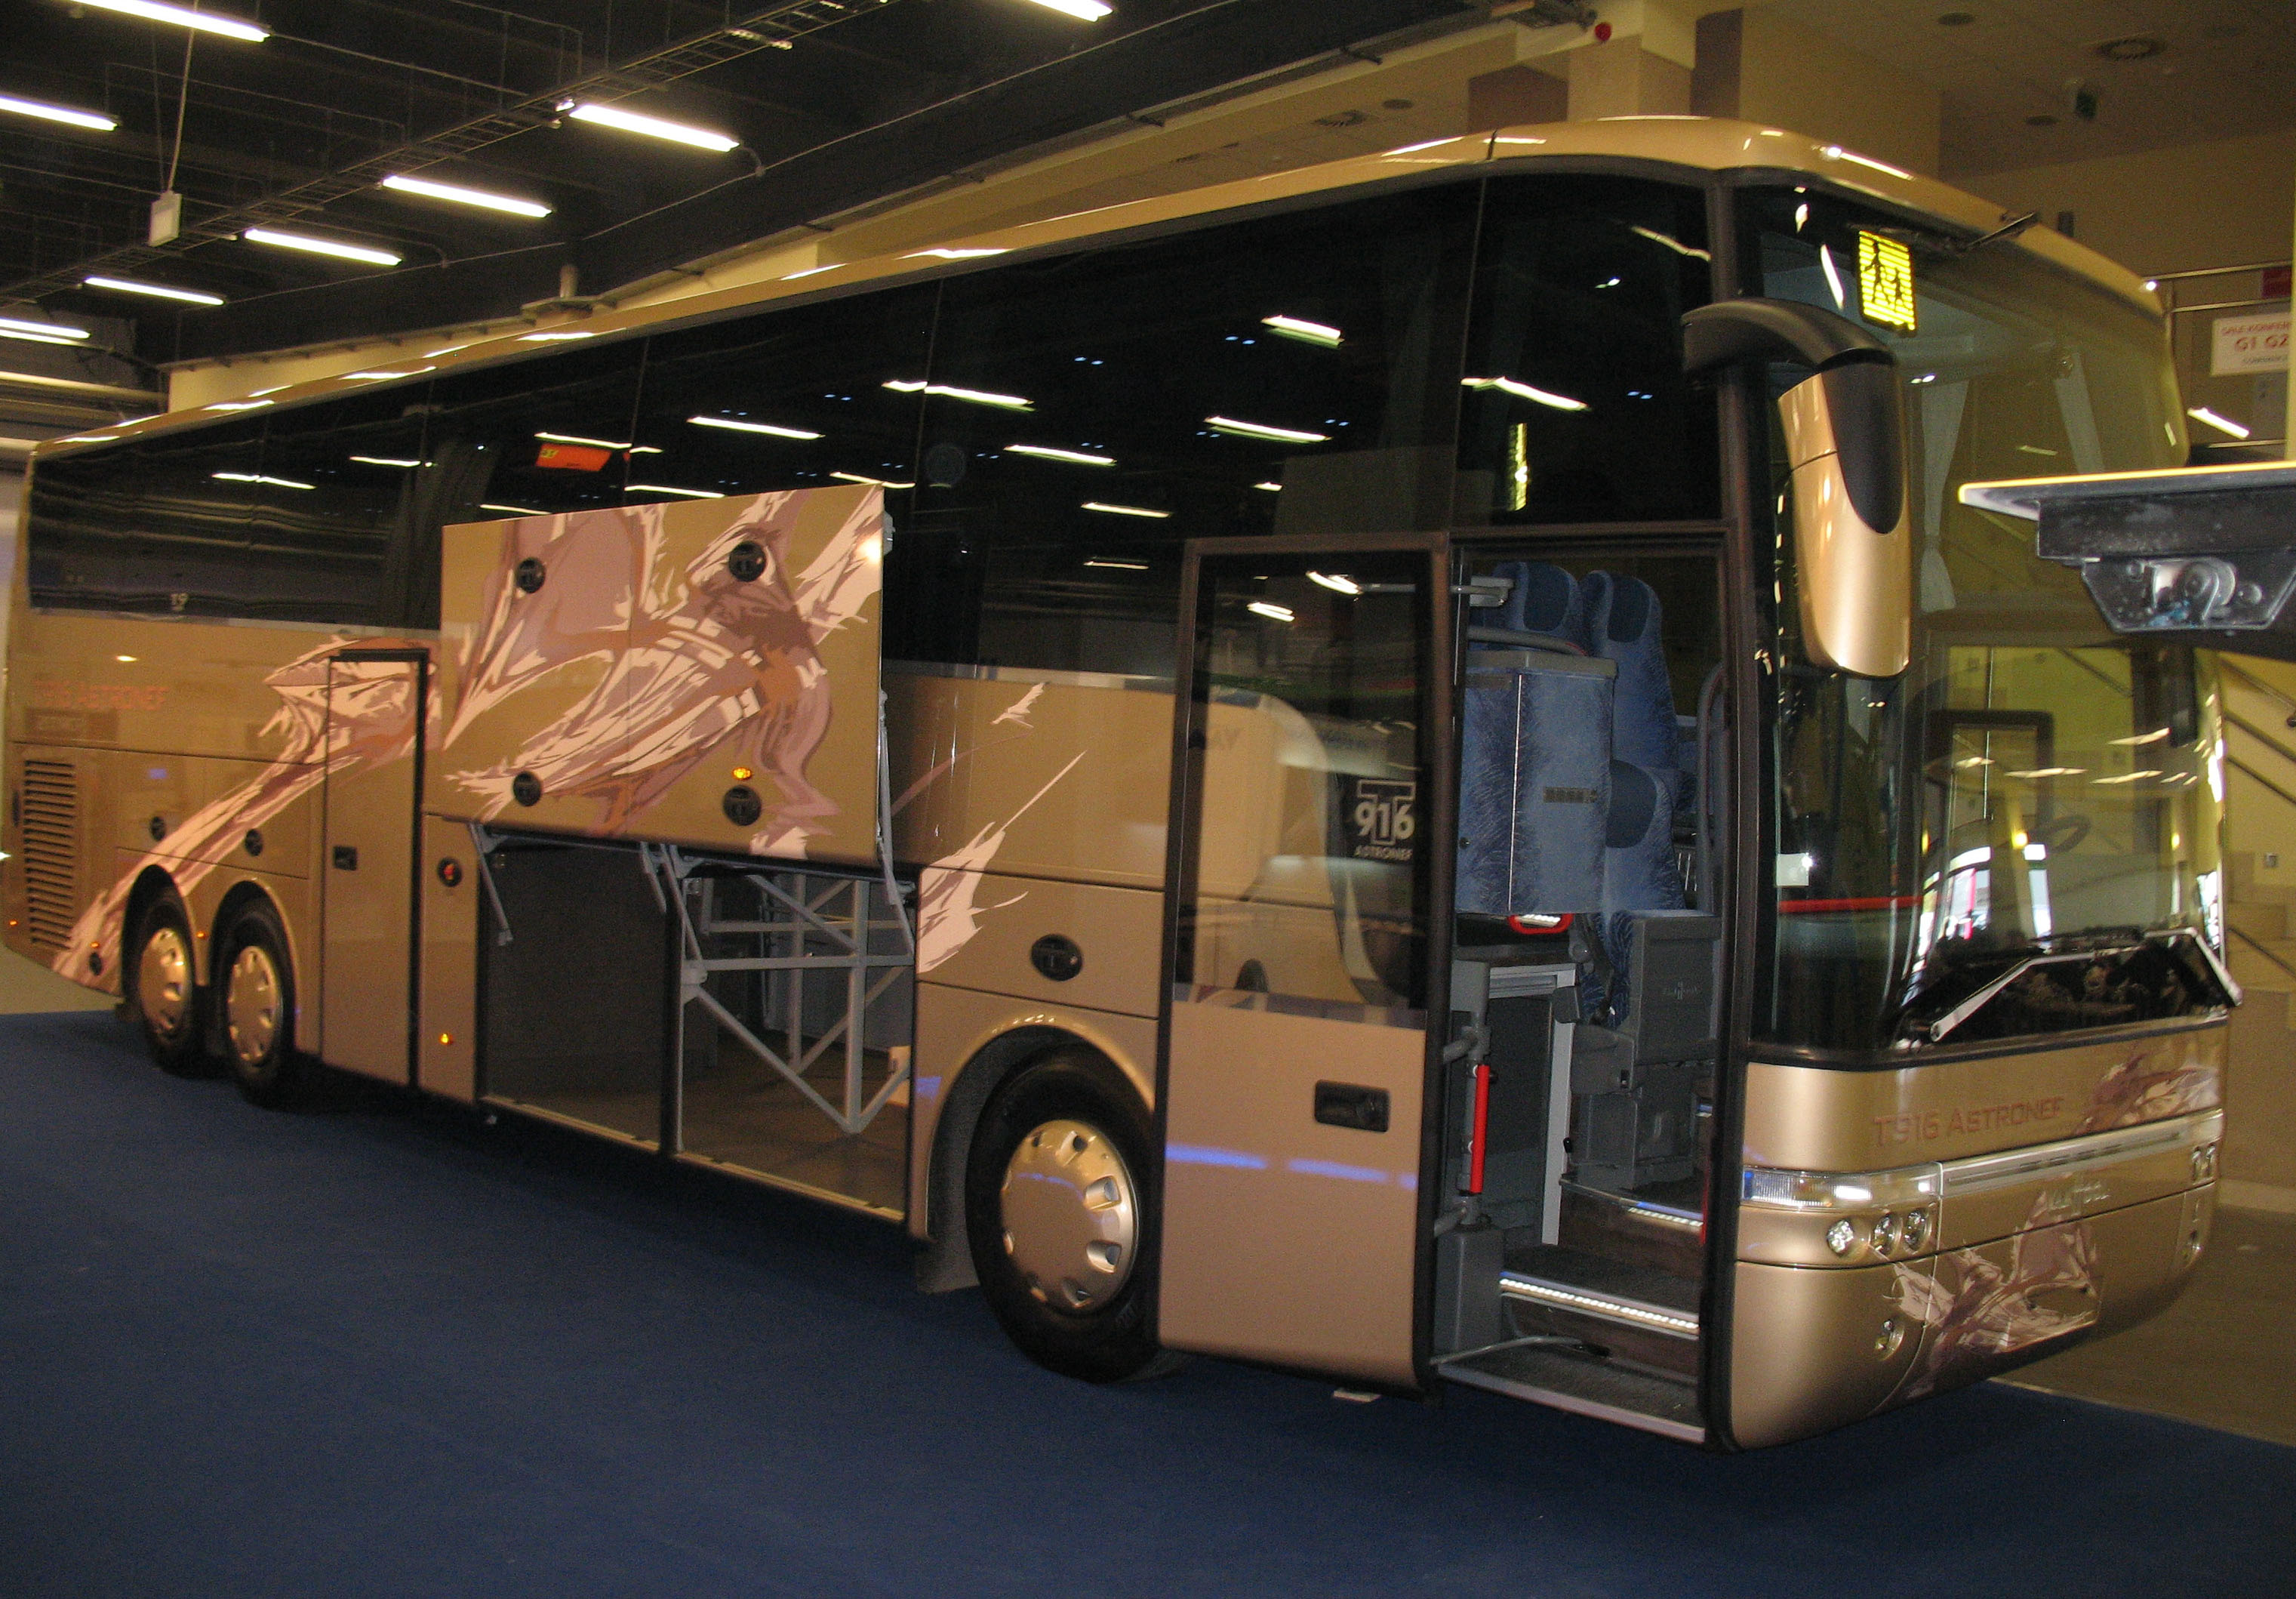 Van hool t916 photo - 1